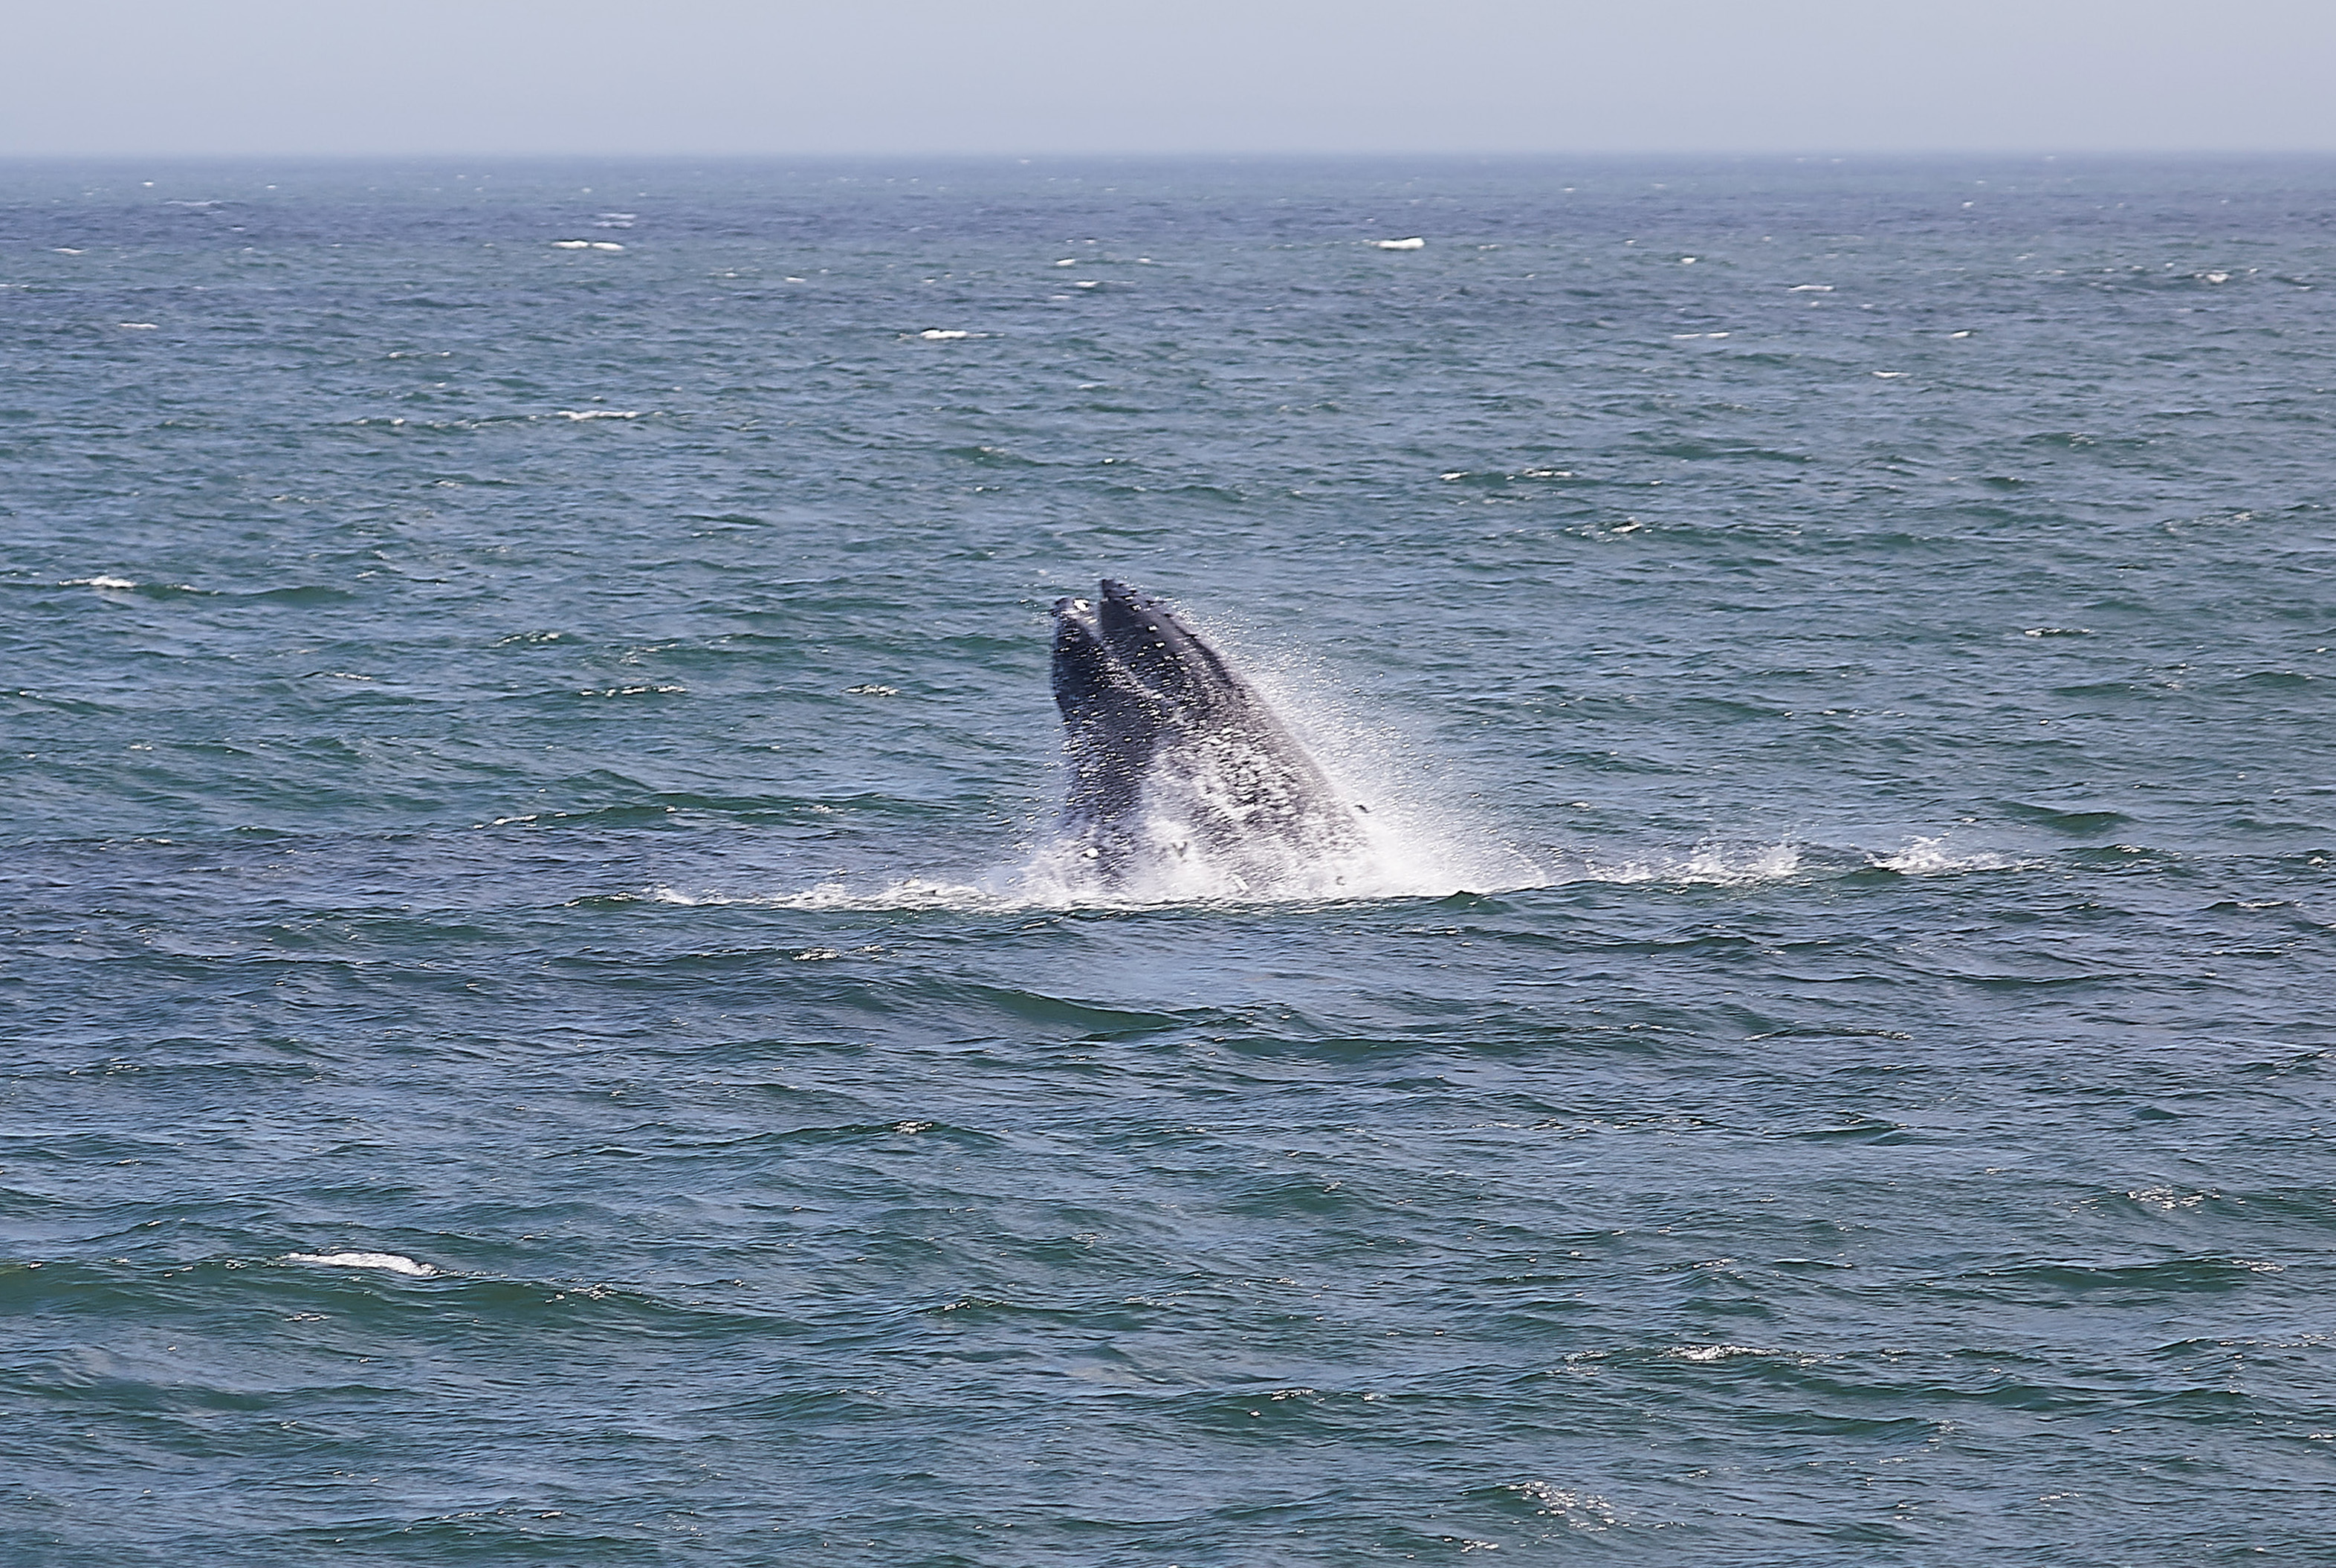 Humpback whale emerging from water.